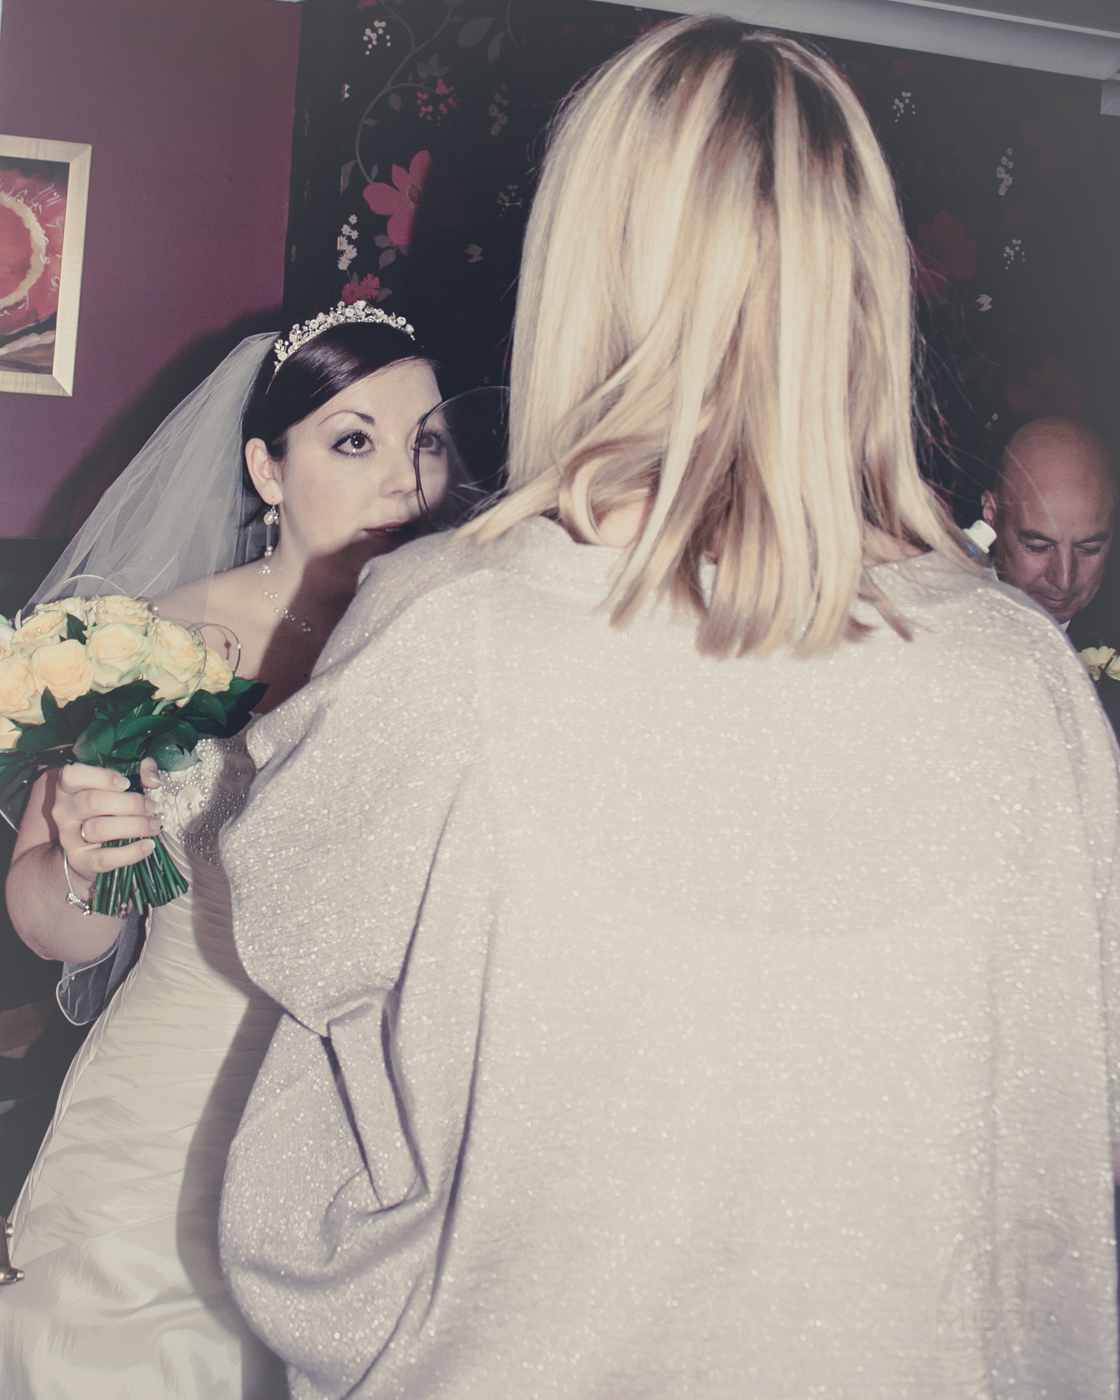 132 - Chris and Natalies Wedding (MAIN) - DO NOT SHARE THIS IMAGES ONLINE -4369.JPG